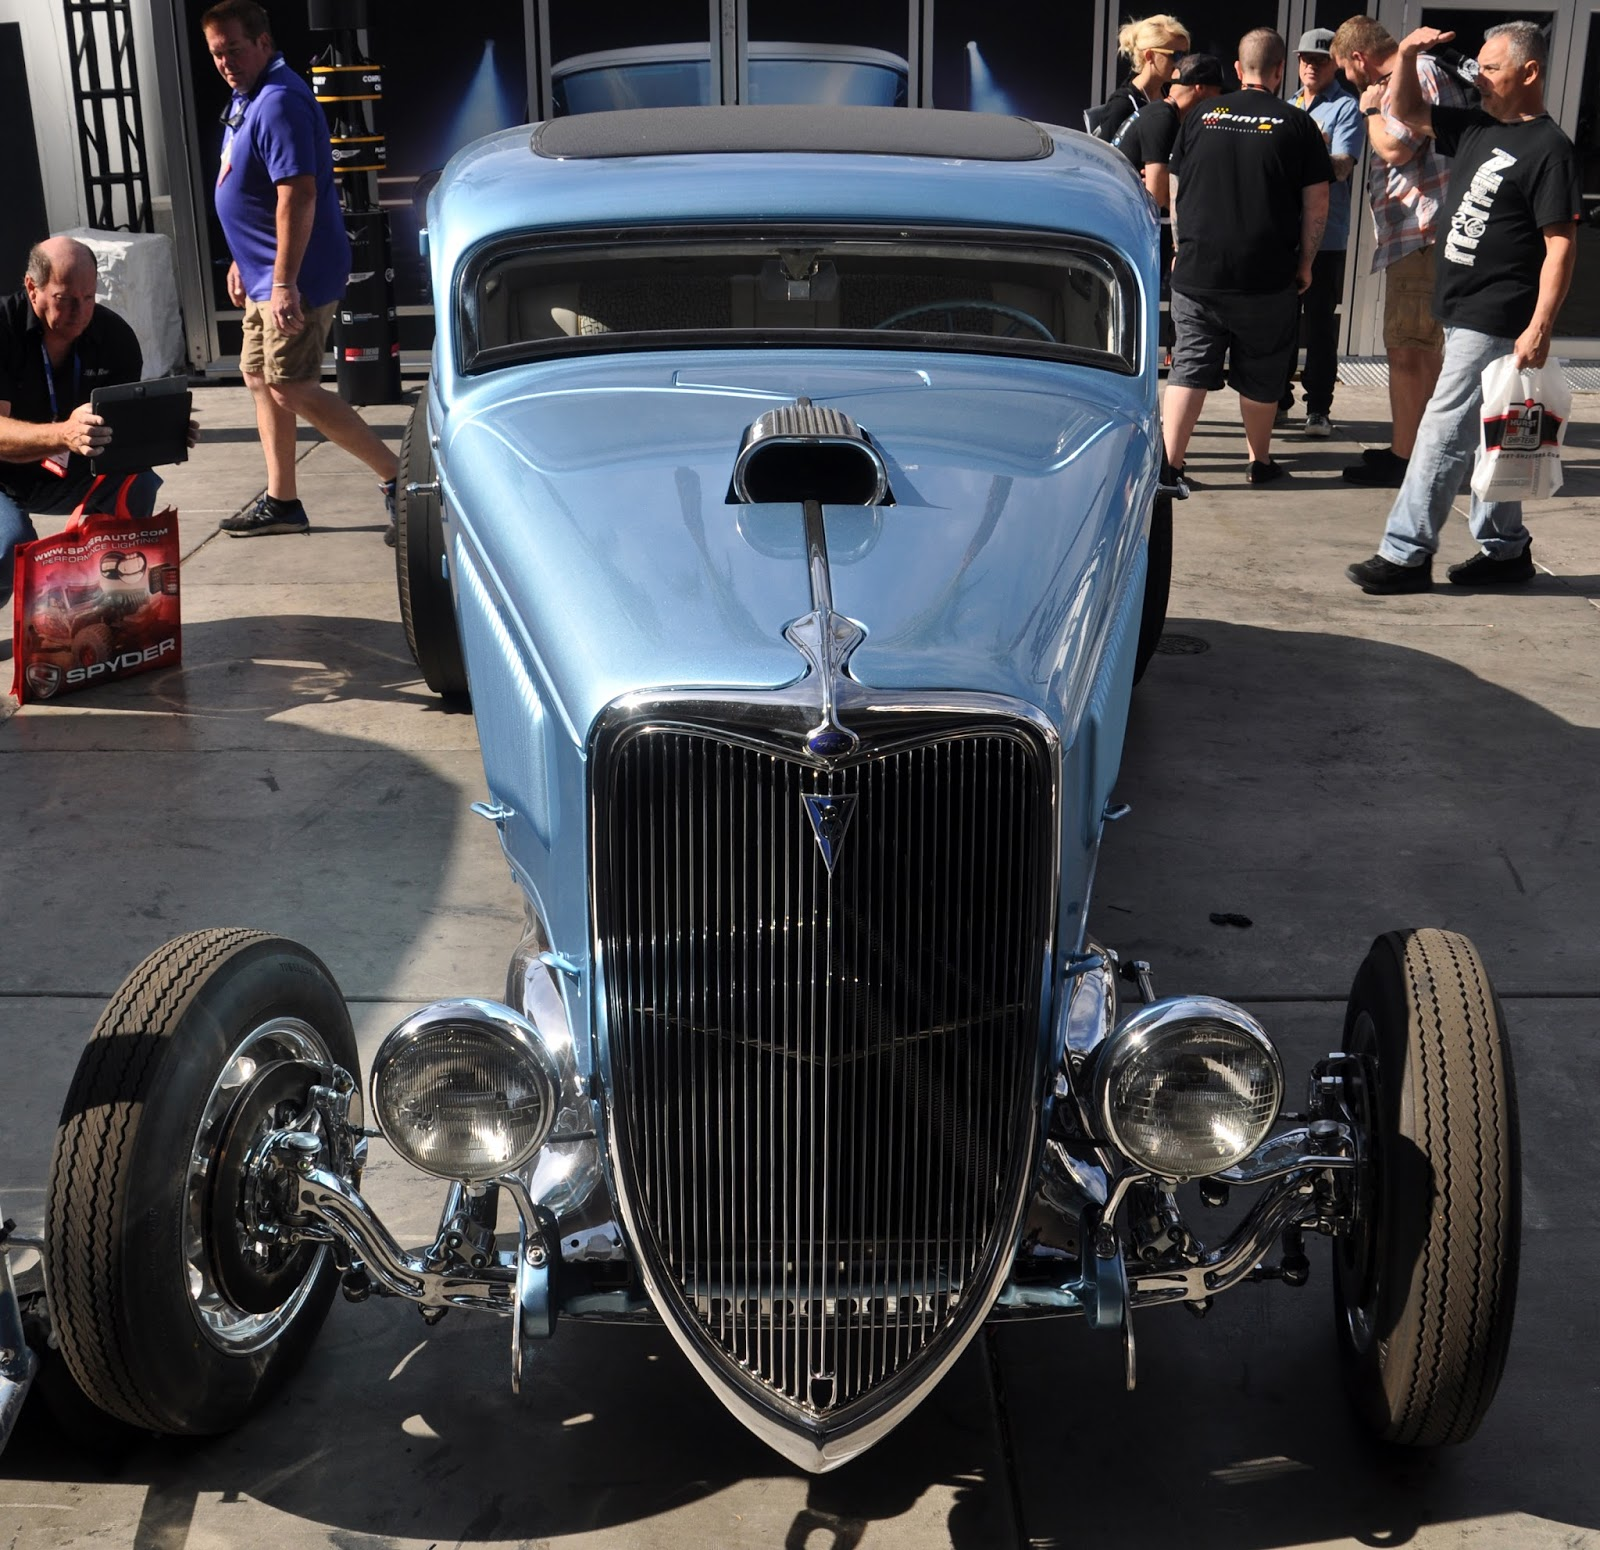 Just A Car Guy: 34 Ford from the TV show people at Fast and Loud